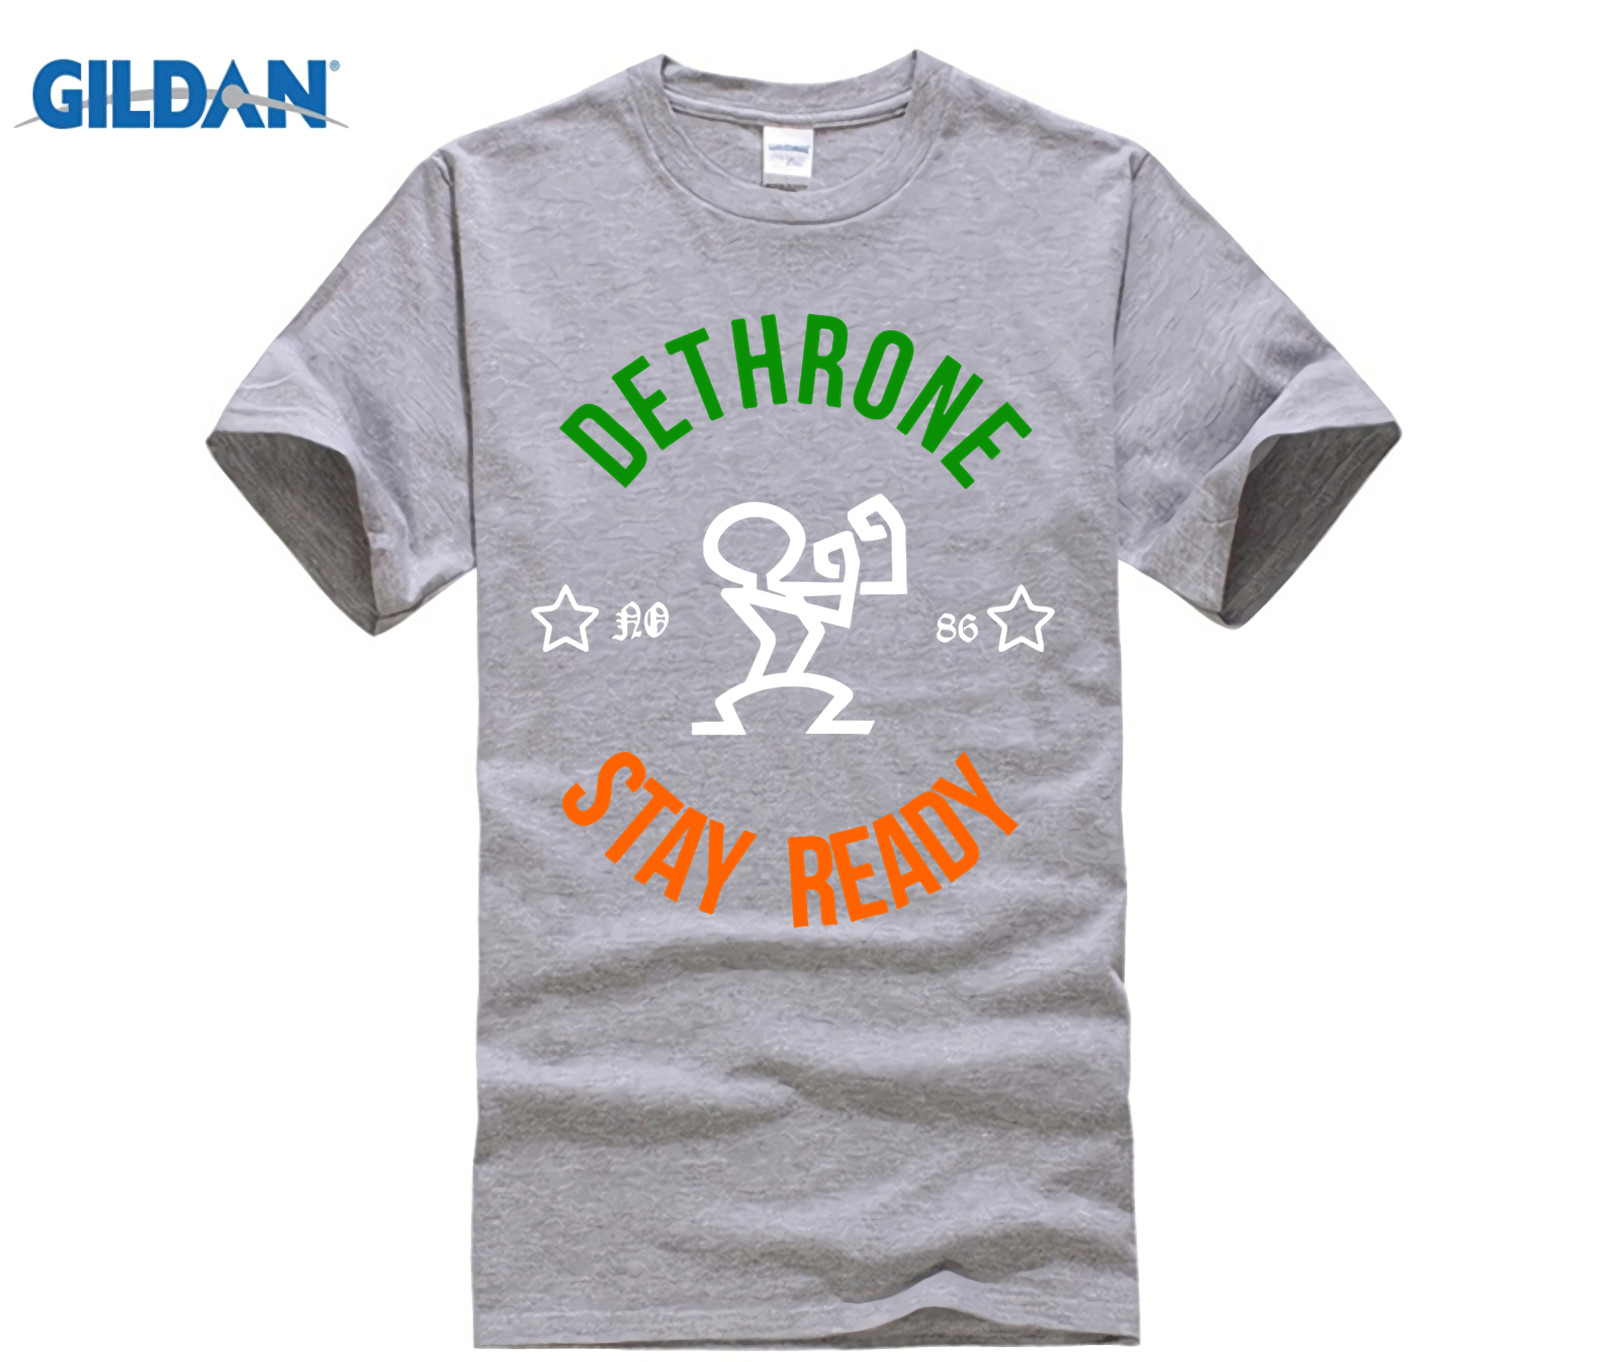 Dethrone Conor Mcgregor Dublin Walk Out 2018 Short Male T Shirt Summer Printed T Shirt Mens Fashion Cotton Mens Xs Tee Shirt in T Shirts from Men 39 s Clothing